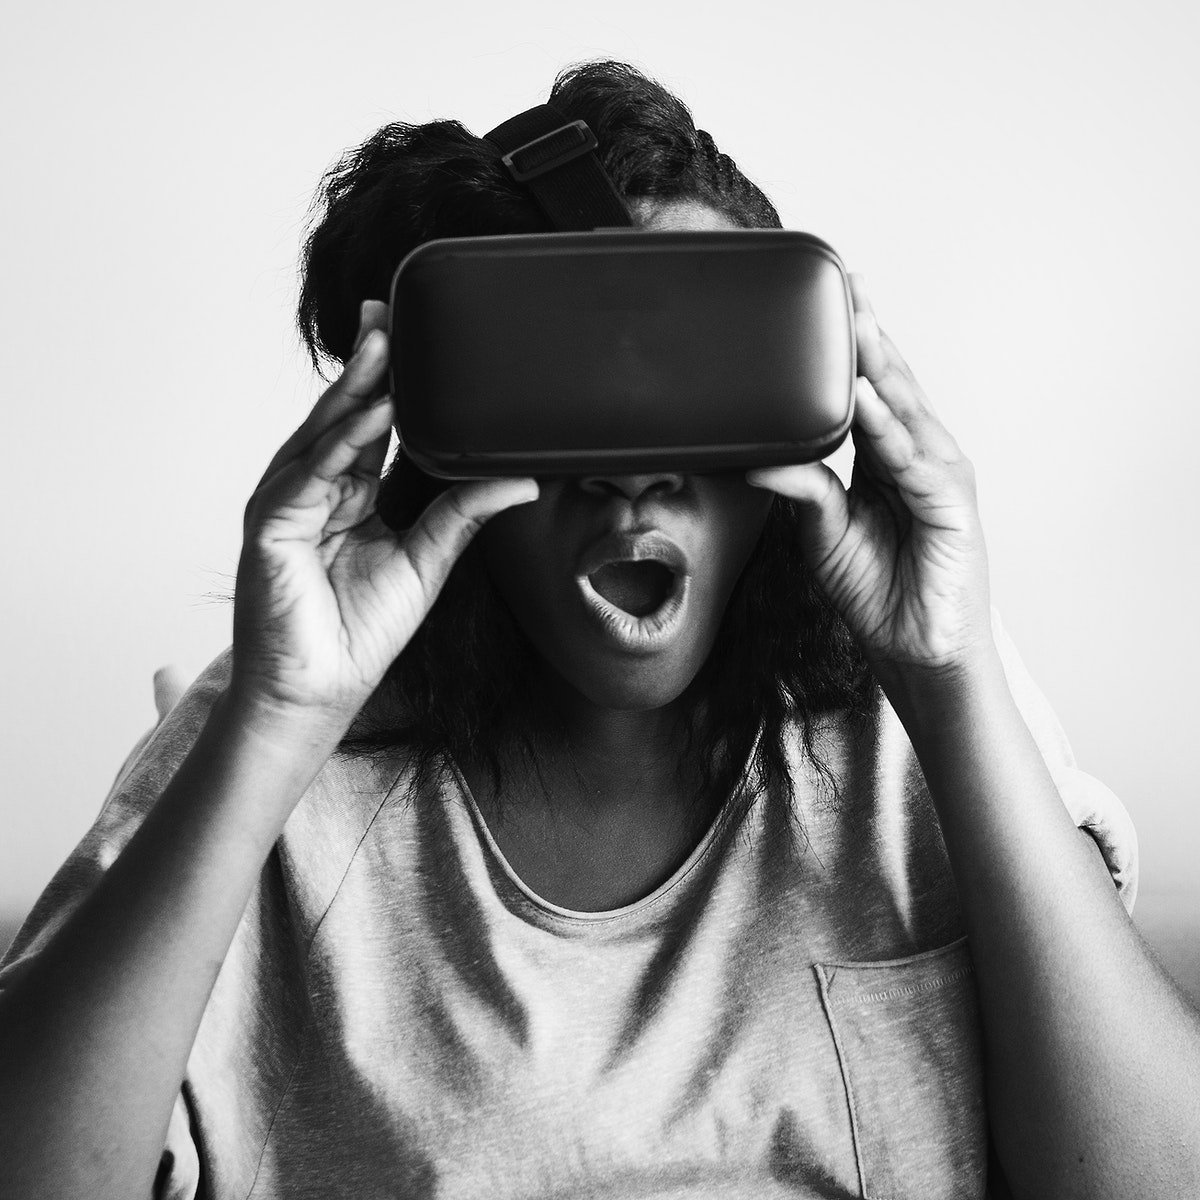 Woman experiencing virtual reality with a VR headset